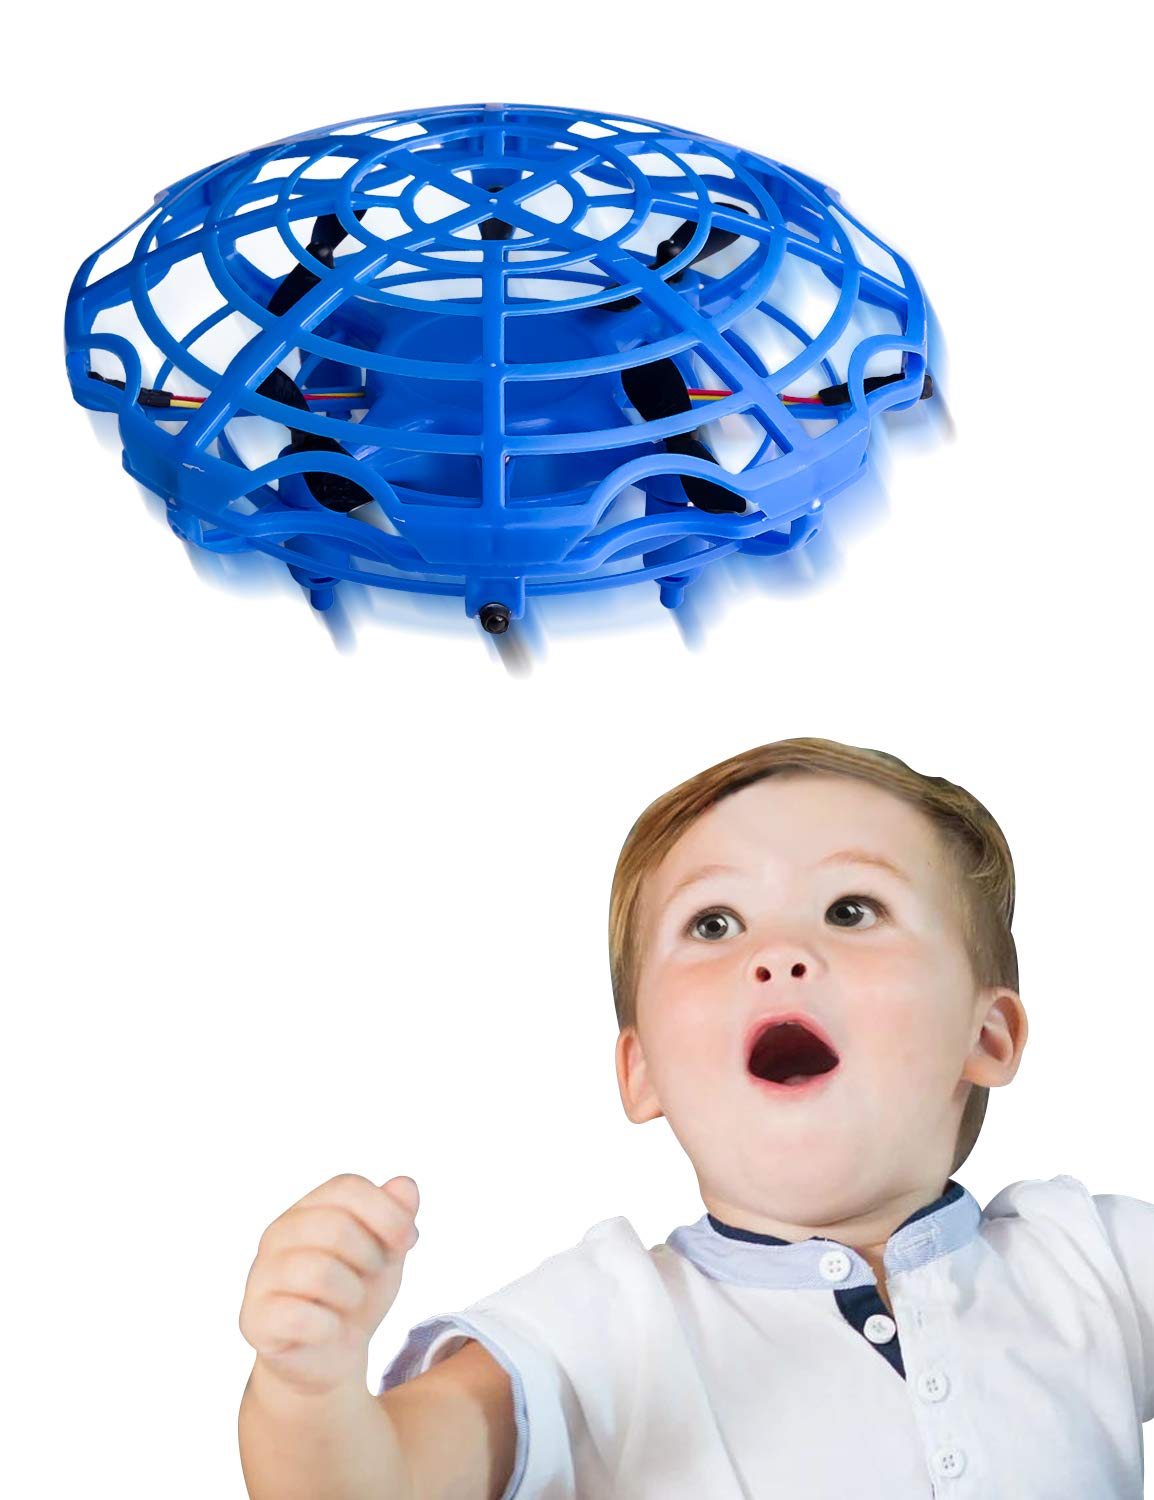 Refasy 3 Year Old Girl Gift Ideas, UFO Hand-Controlled Mini Drone Helicopter Flying Ball Toys for 3-12 Year Old Boy Outdoor Toys LED Light for Kid 8-12 Year Old or Adults Blue